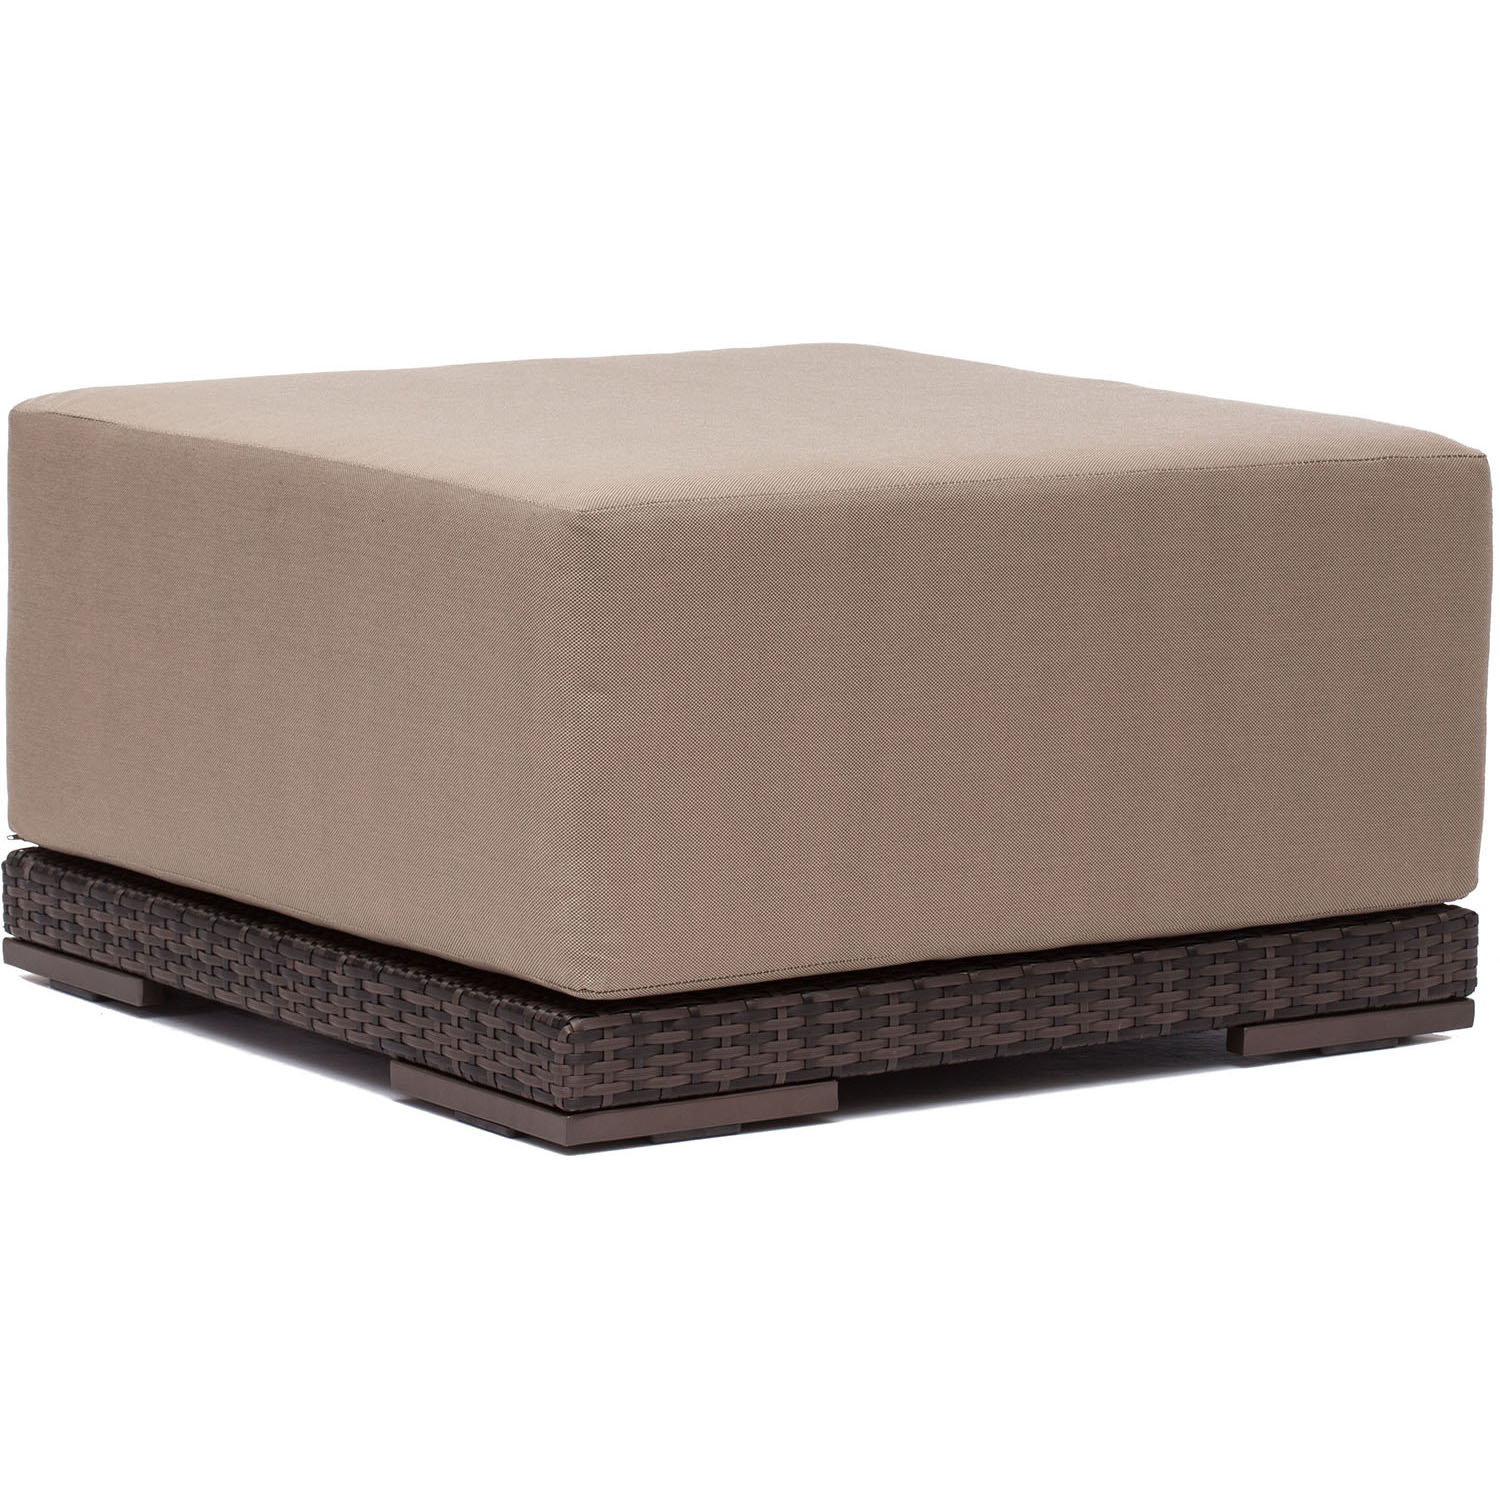 User friendly Outdoor Park Island Ottoman  Product Photo